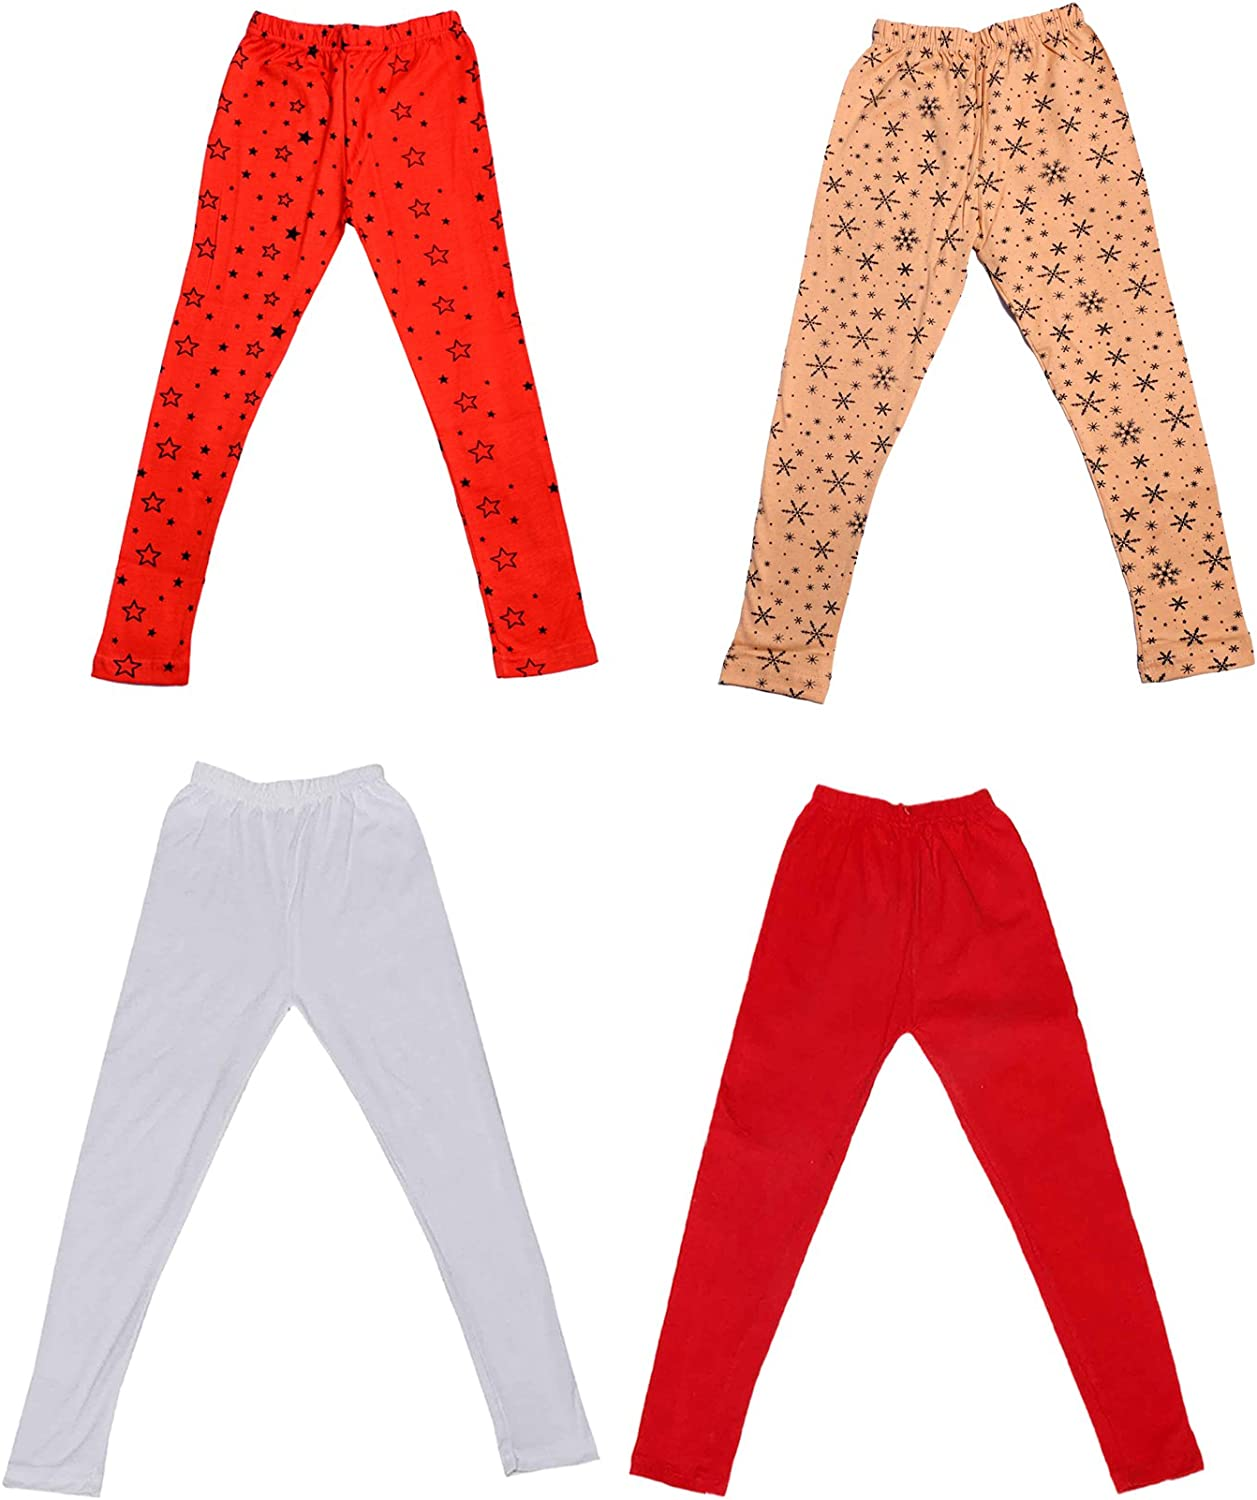 and 2 Cotton Printed Legging Pants Indistar Girls 2 Cotton Solid Legging Pants /_Multicolor/_Size-5-6 Years/_71403041619-IW-P4-28 Pack Of 4